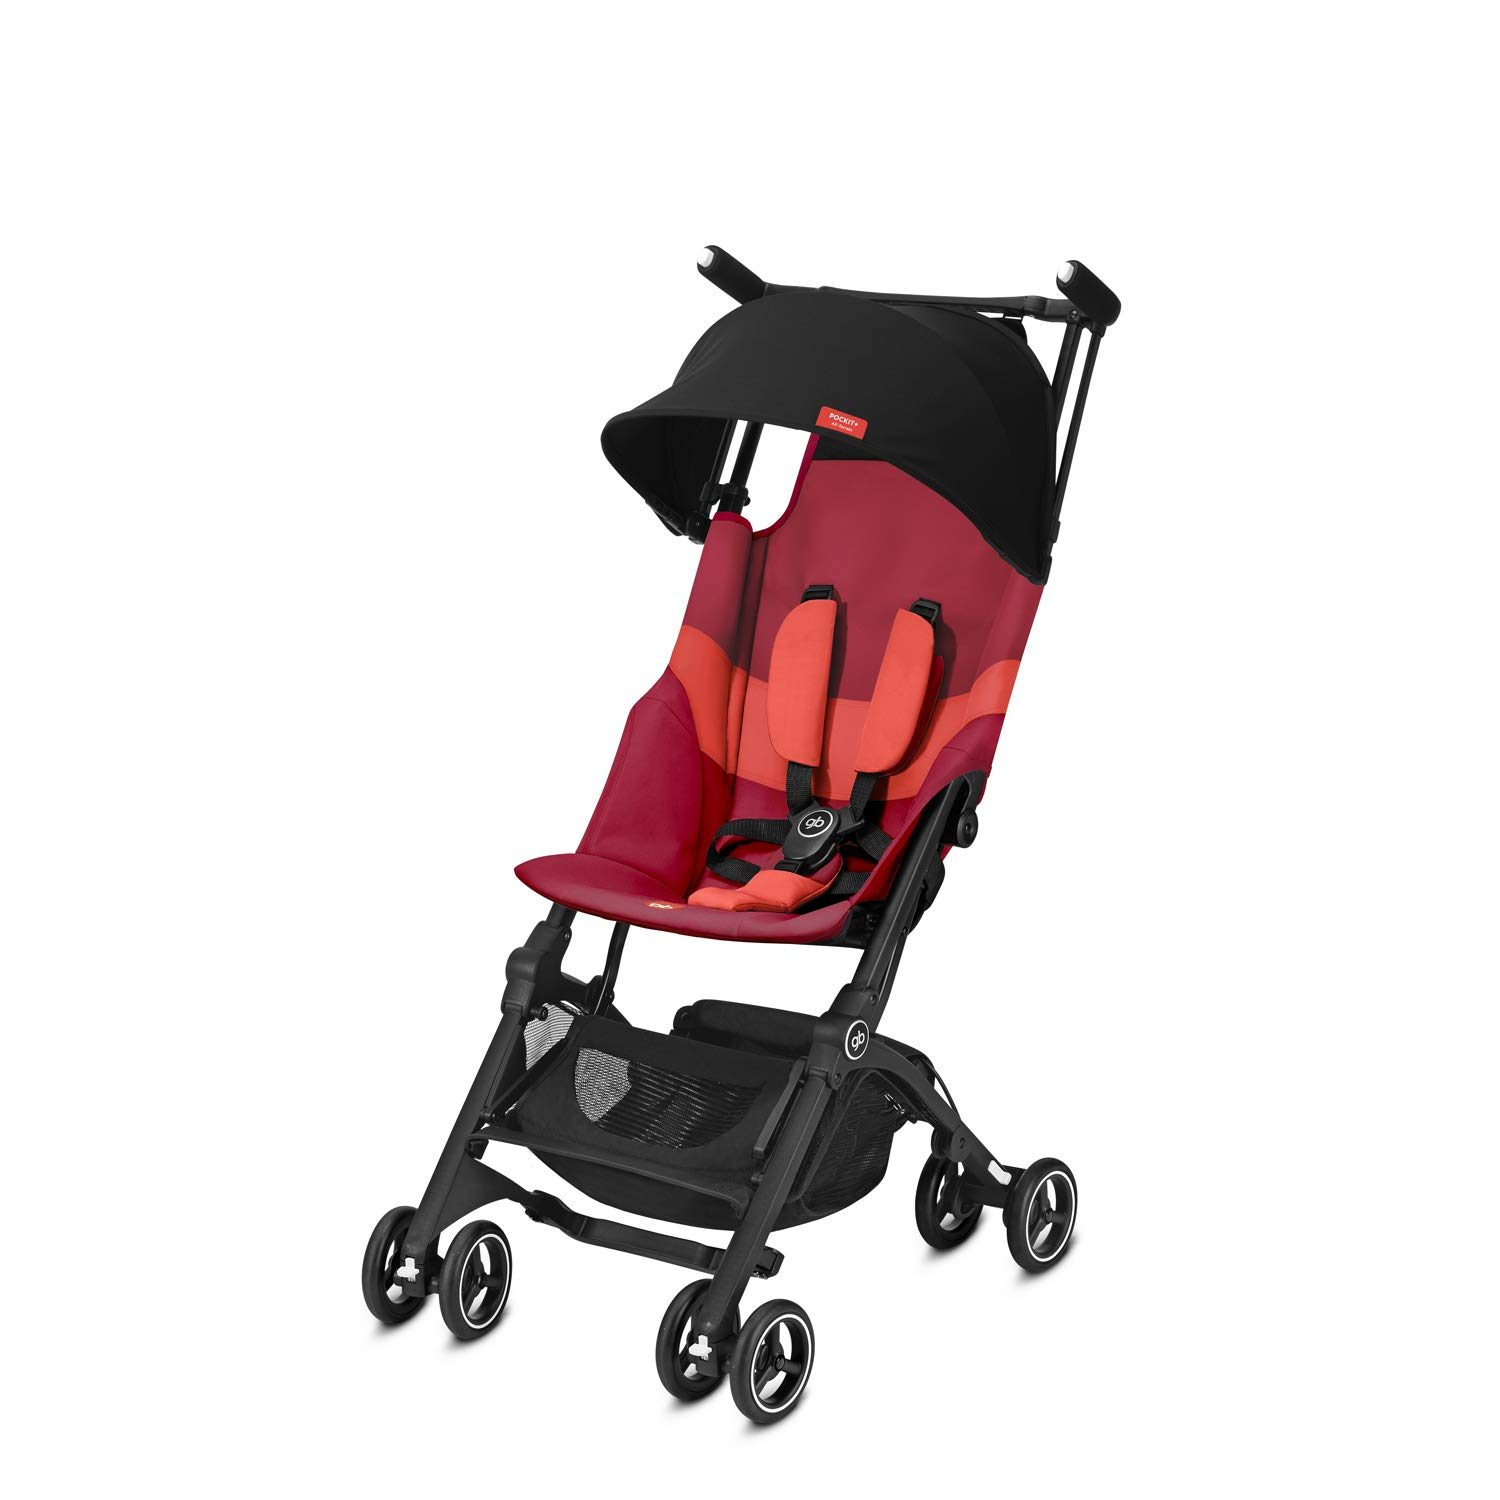 gb Gold Pockit+ All Terrain Ultra Compact Pushchair, Cabin Luggage Compliant, From 6 Months to 17 kg (approx. 4 Years), Rose Red